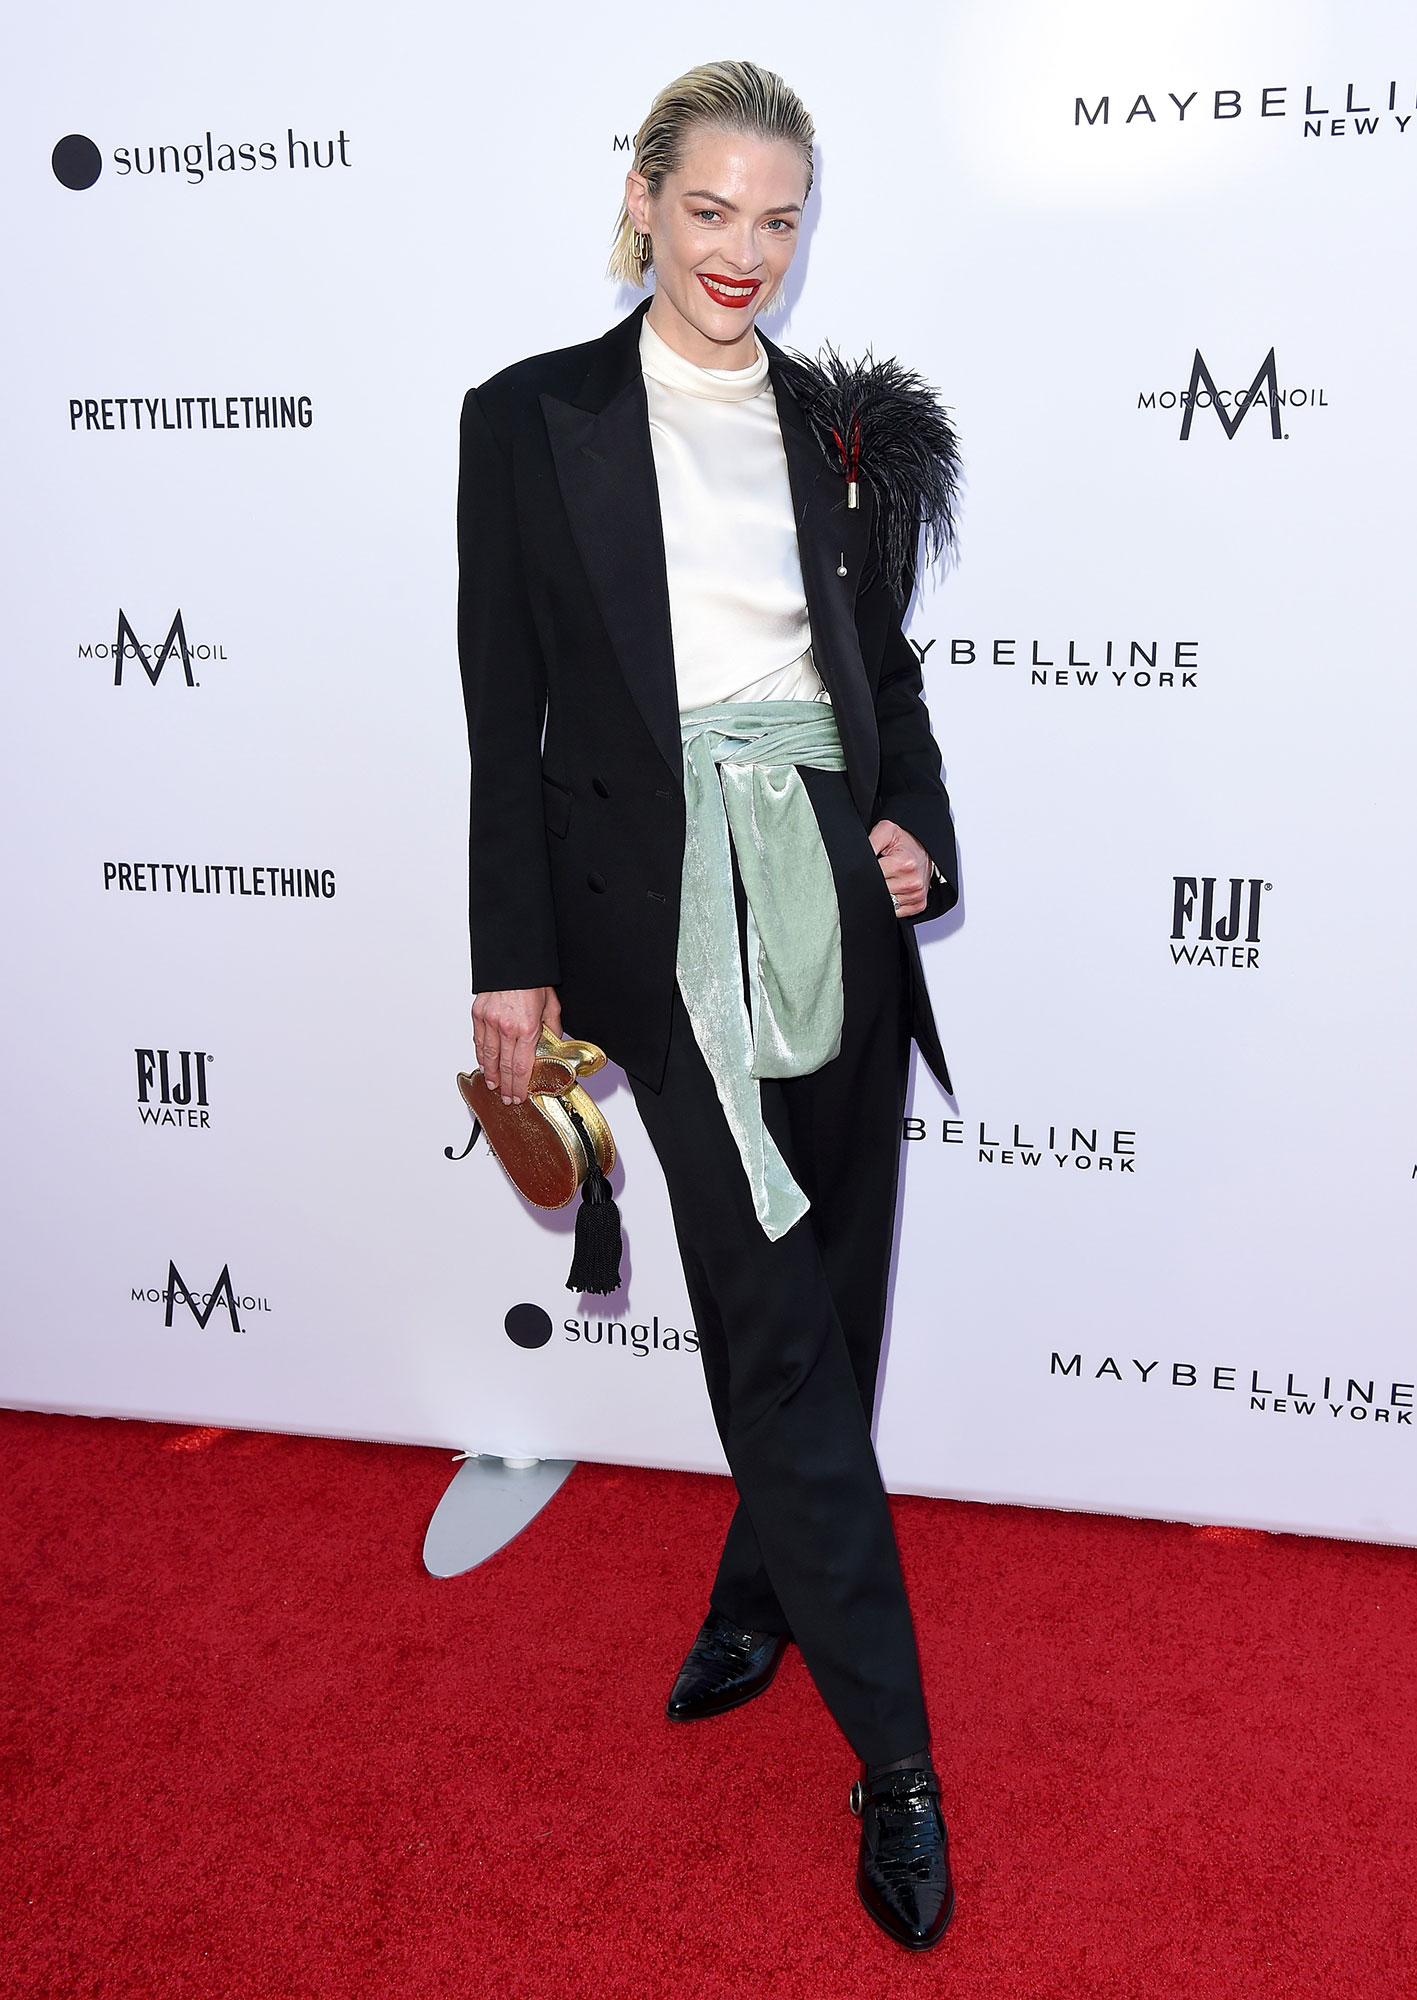 Stars Brought Their Style A-Game to the Daily Front Row Fashion Awards - In a tailored suit, the actress added a funky appeal to her otherwise simple look with a green scarf around the waist and an ostrich feather attached to the lapel.